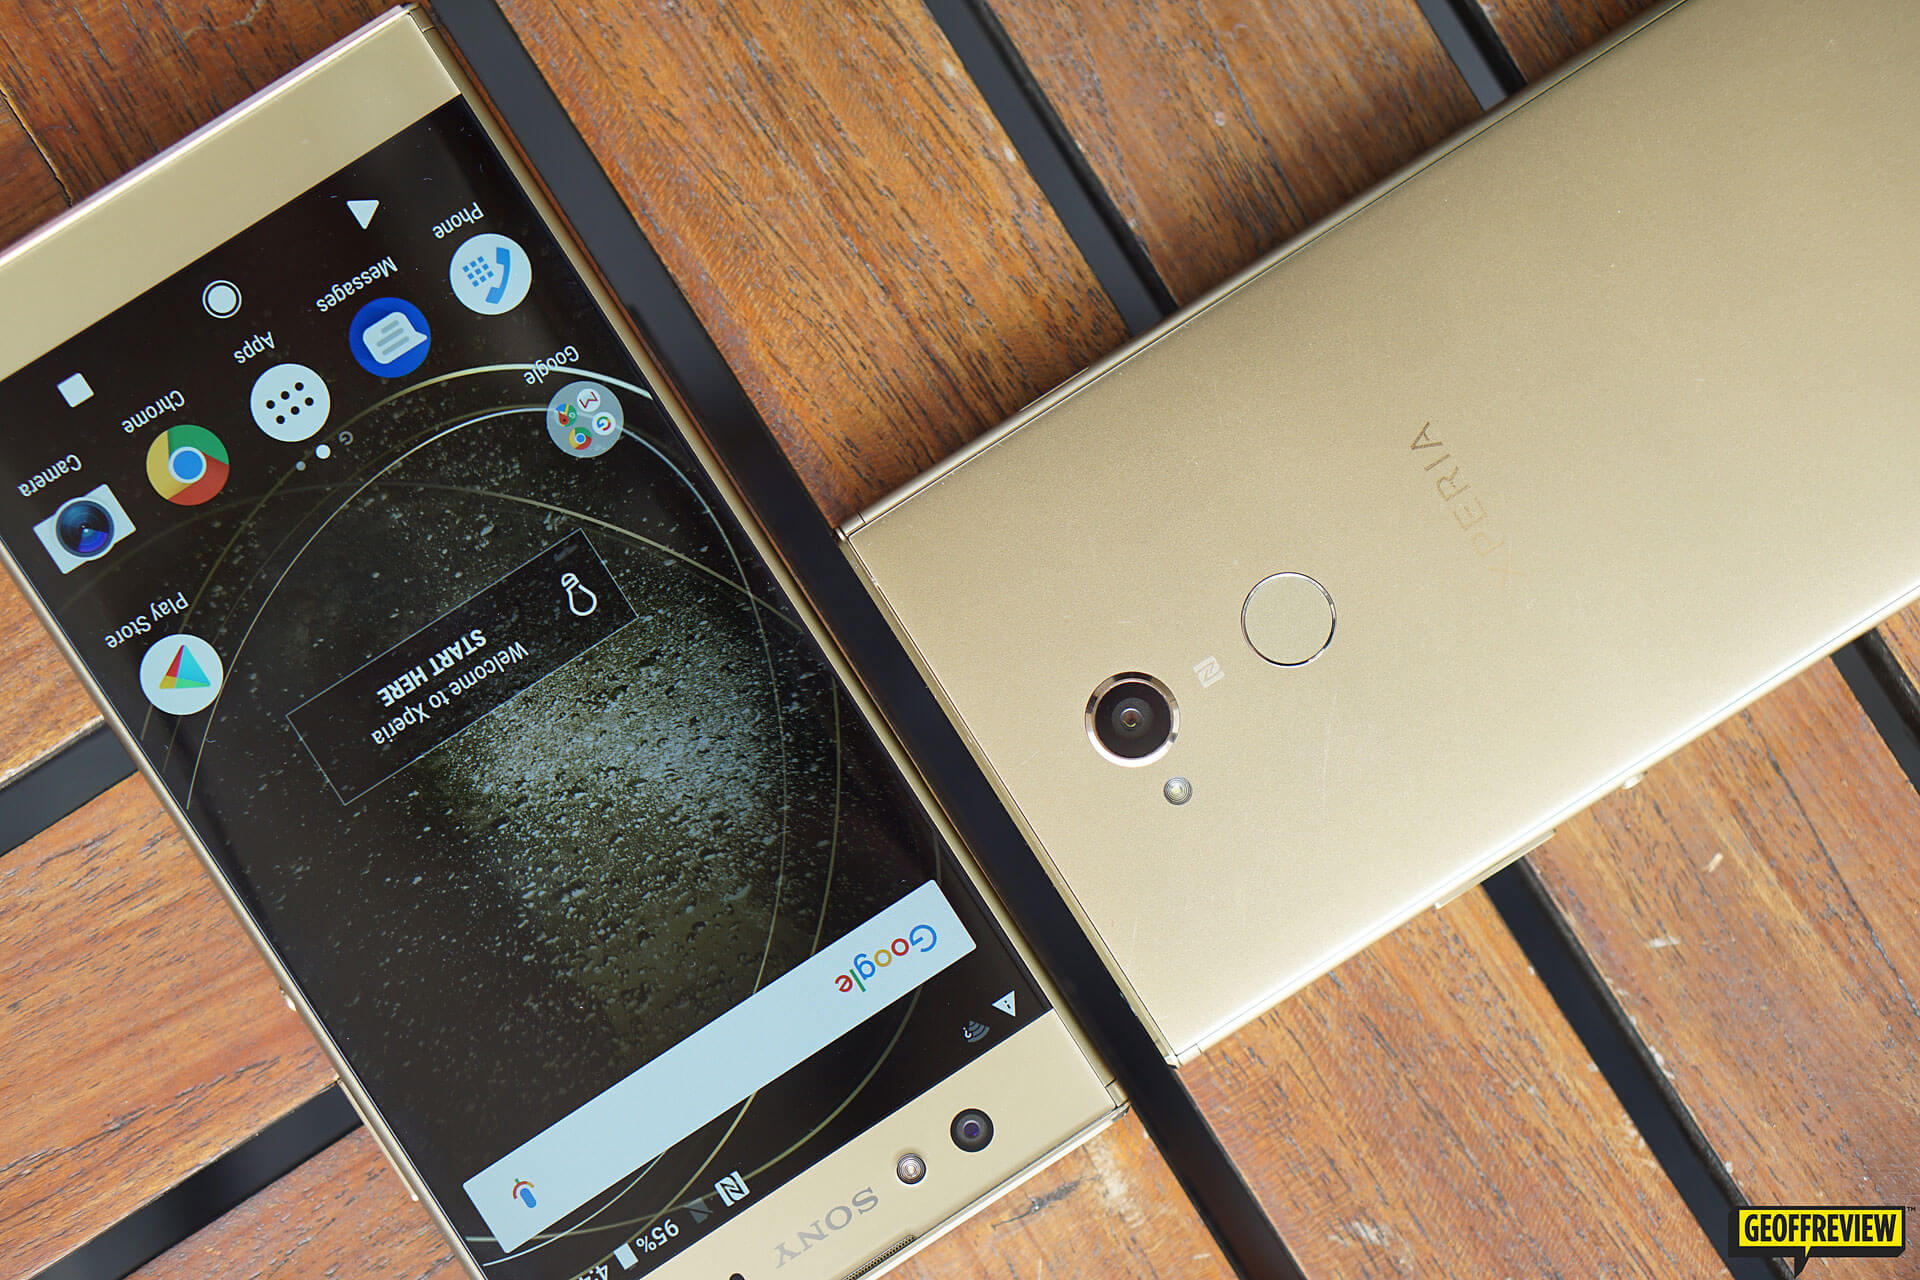 sony xperia xa2 ultra price philippines